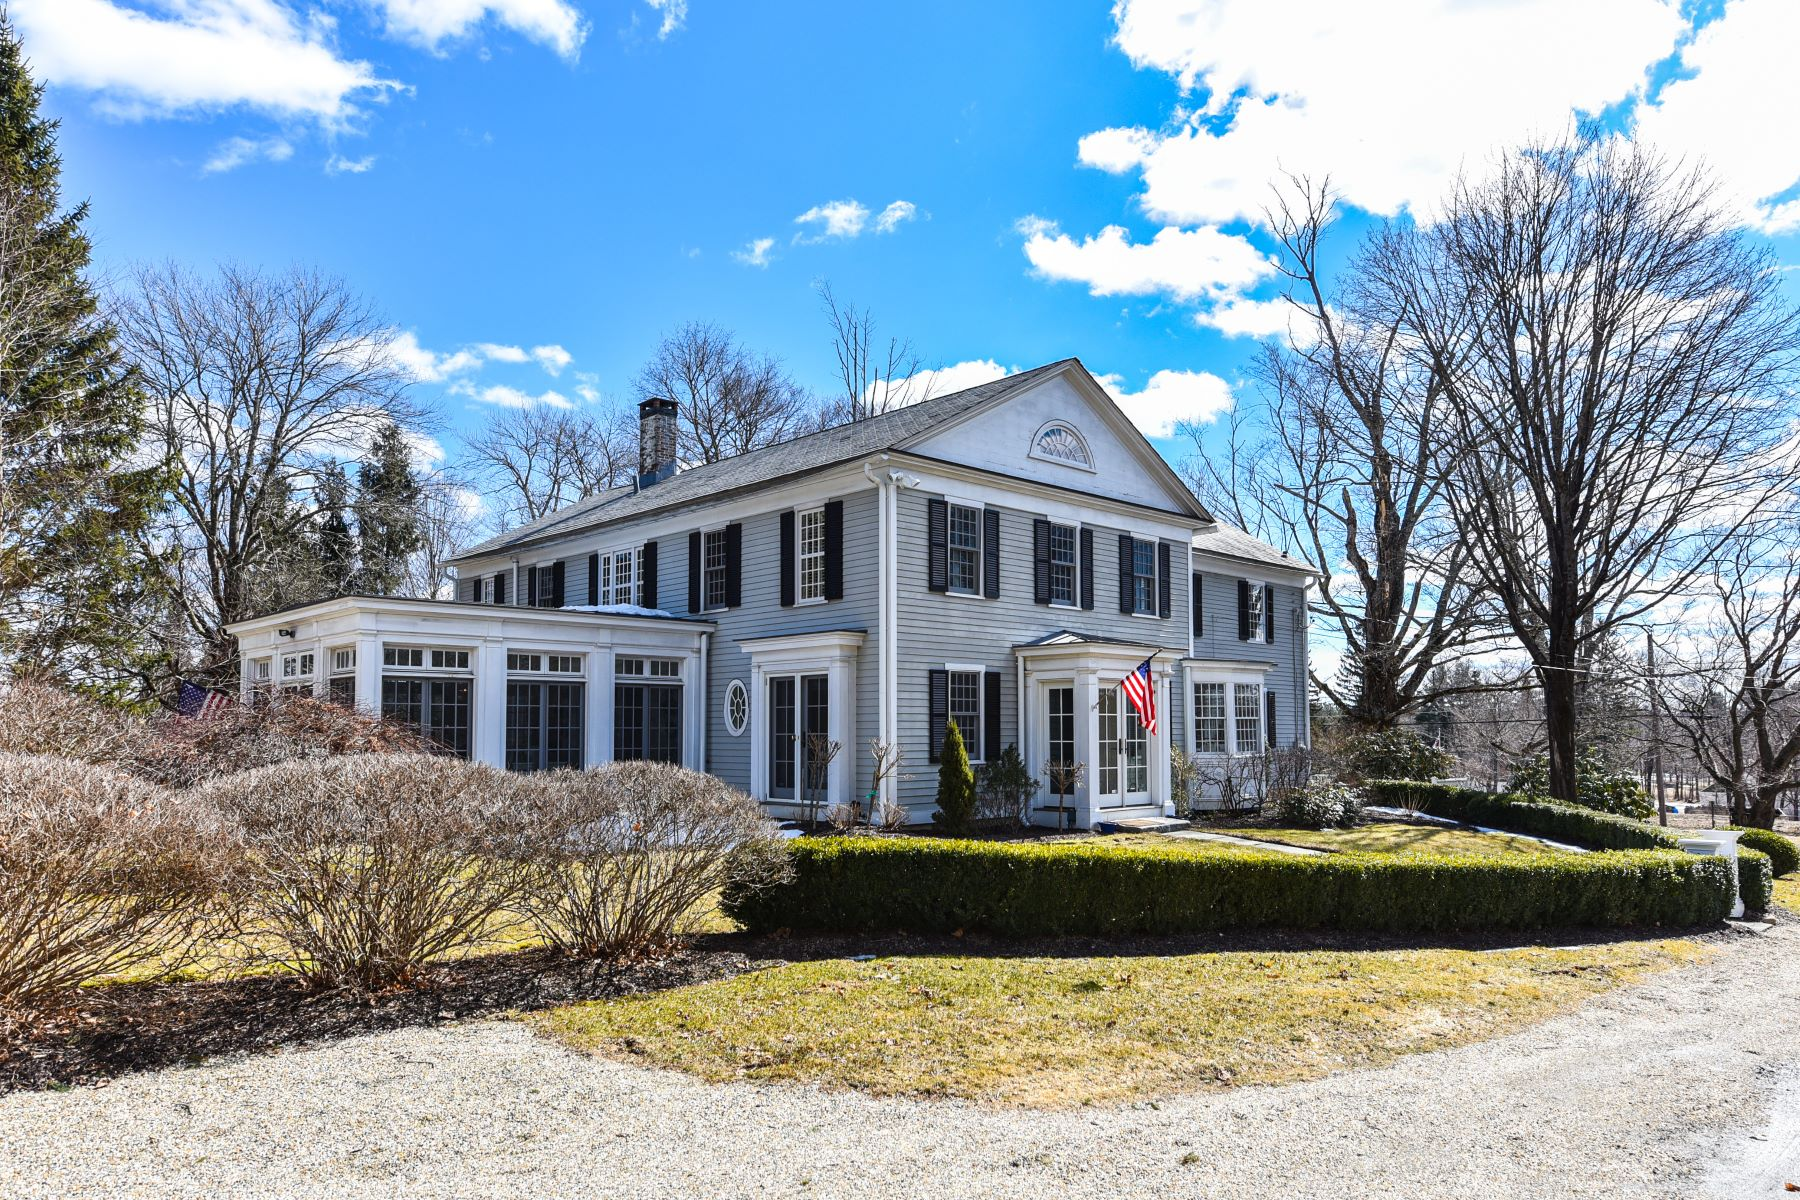 Casa Unifamiliar por un Venta en Own a piece of Litchfield History 16 Brush Hill Road Litchfield, Connecticut 06759 Estados Unidos